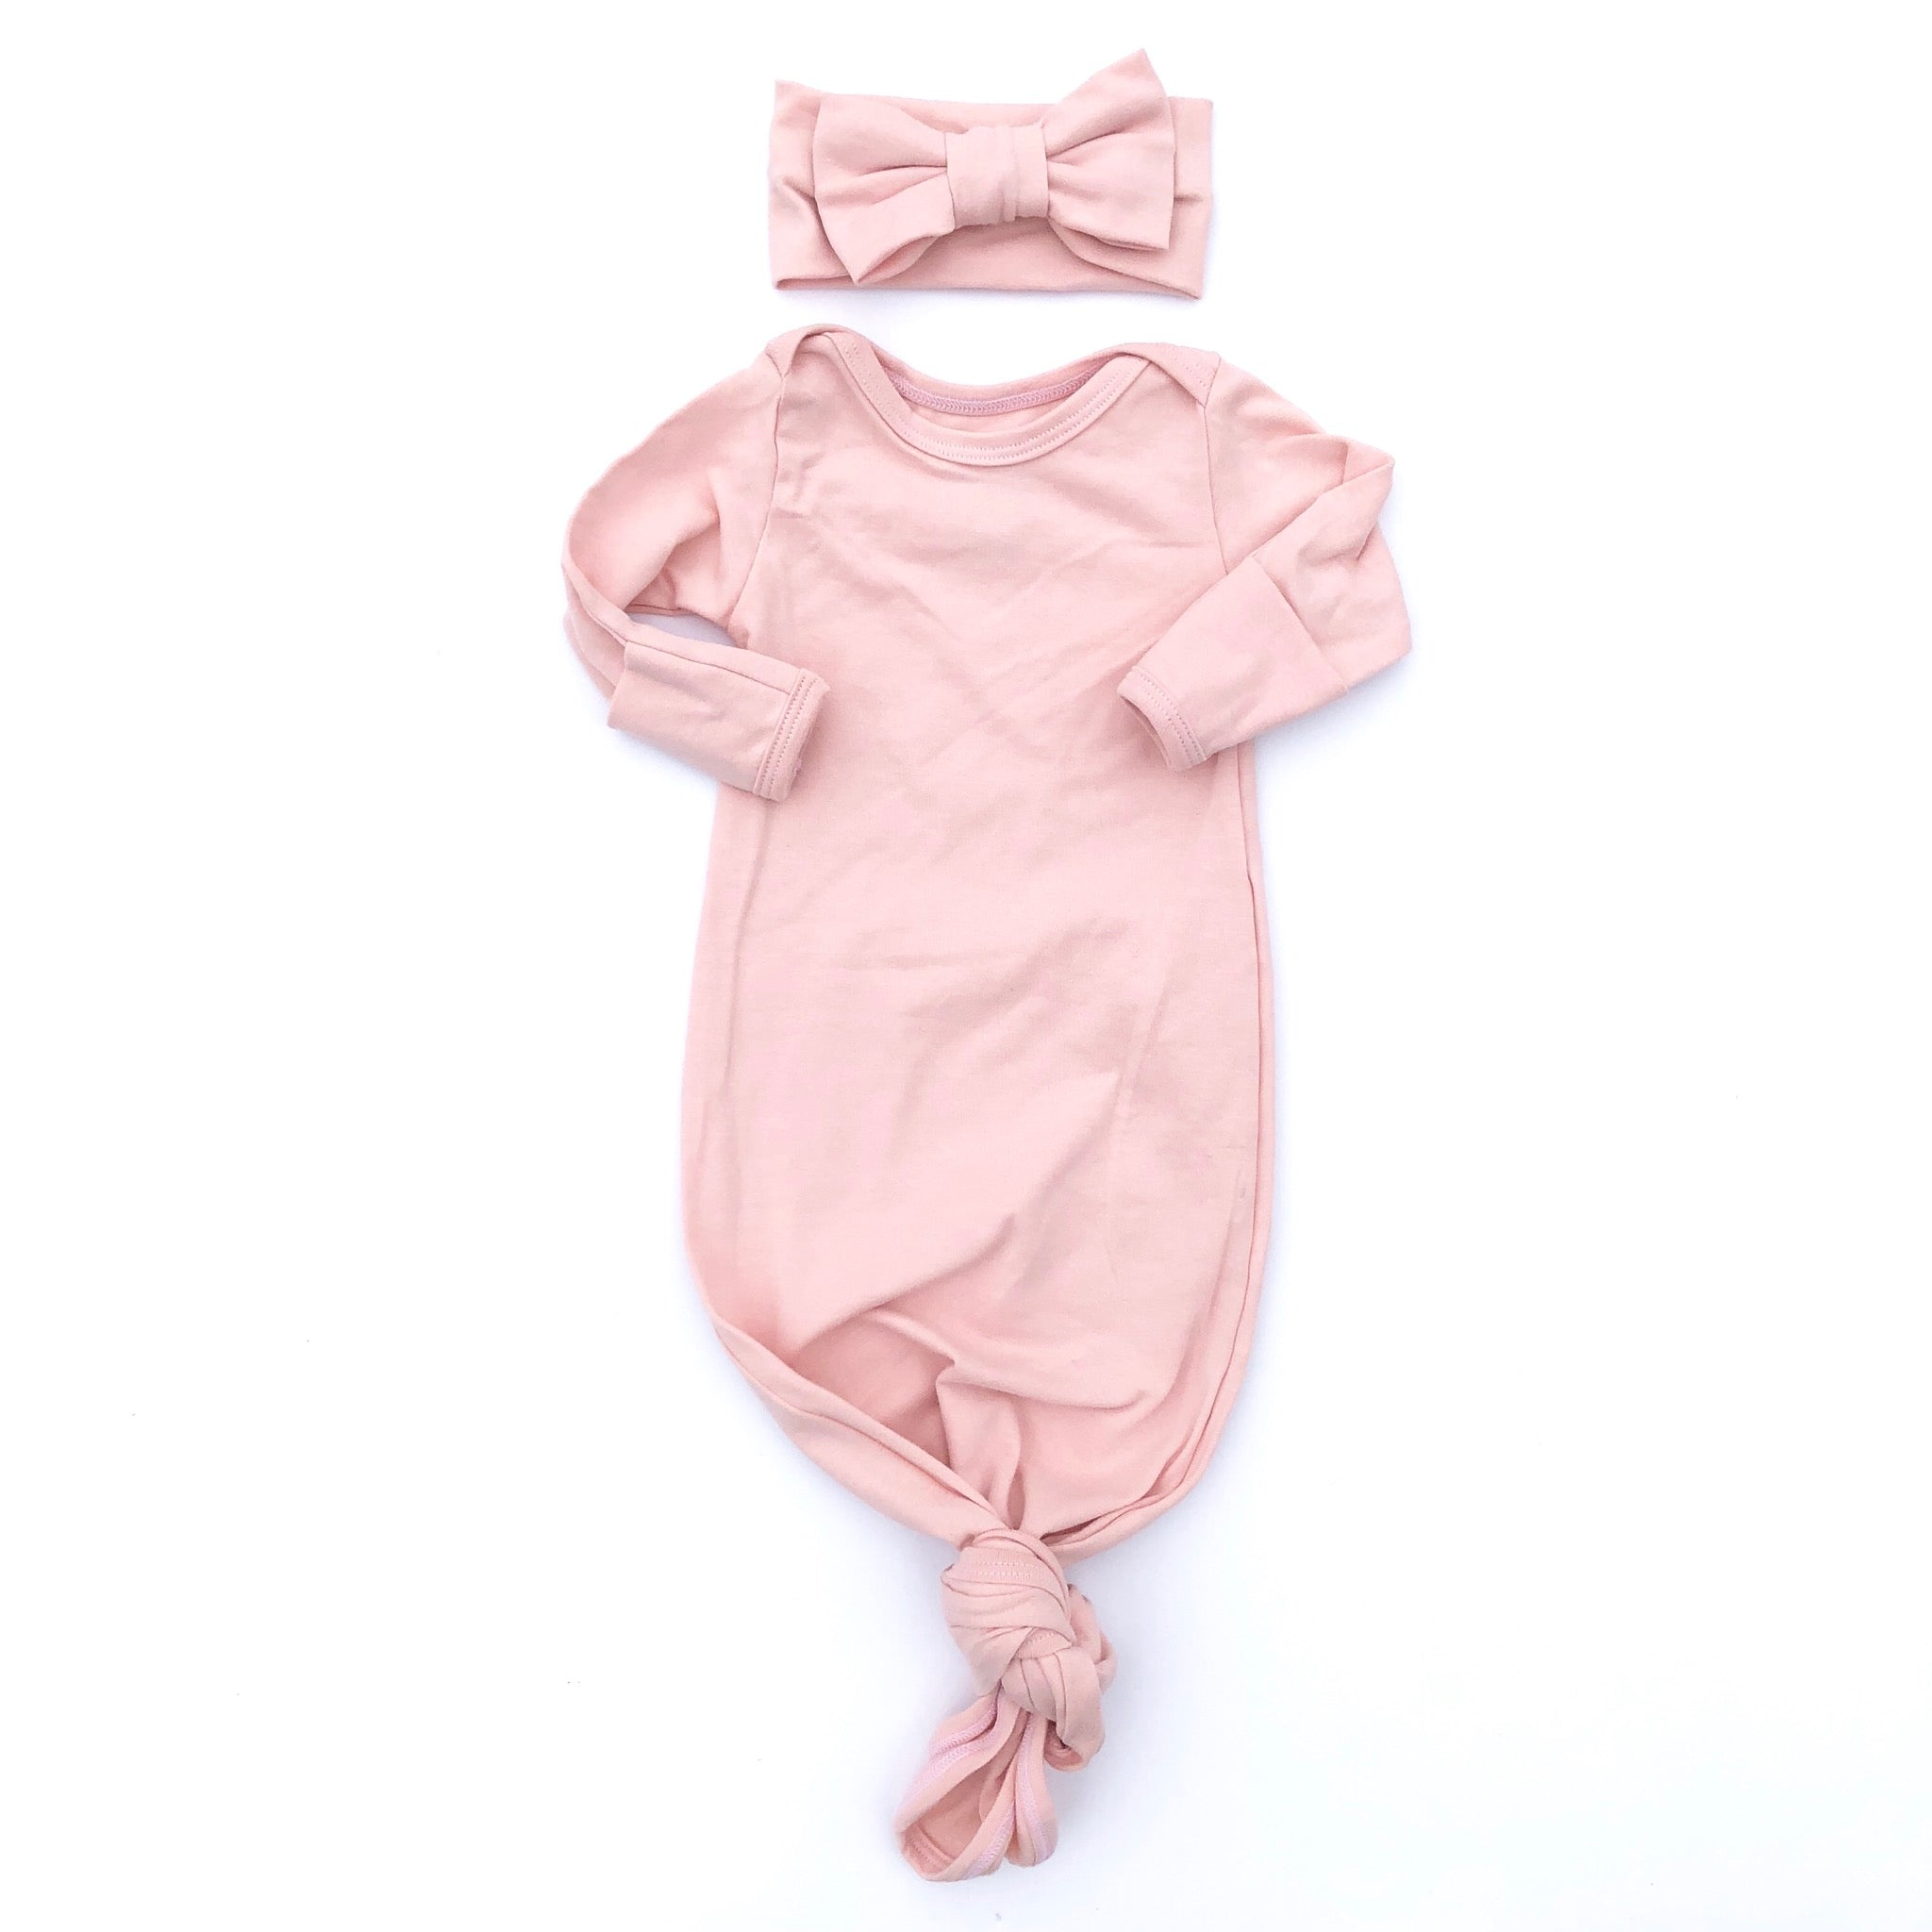 Baby Gowns | Oh So Vera